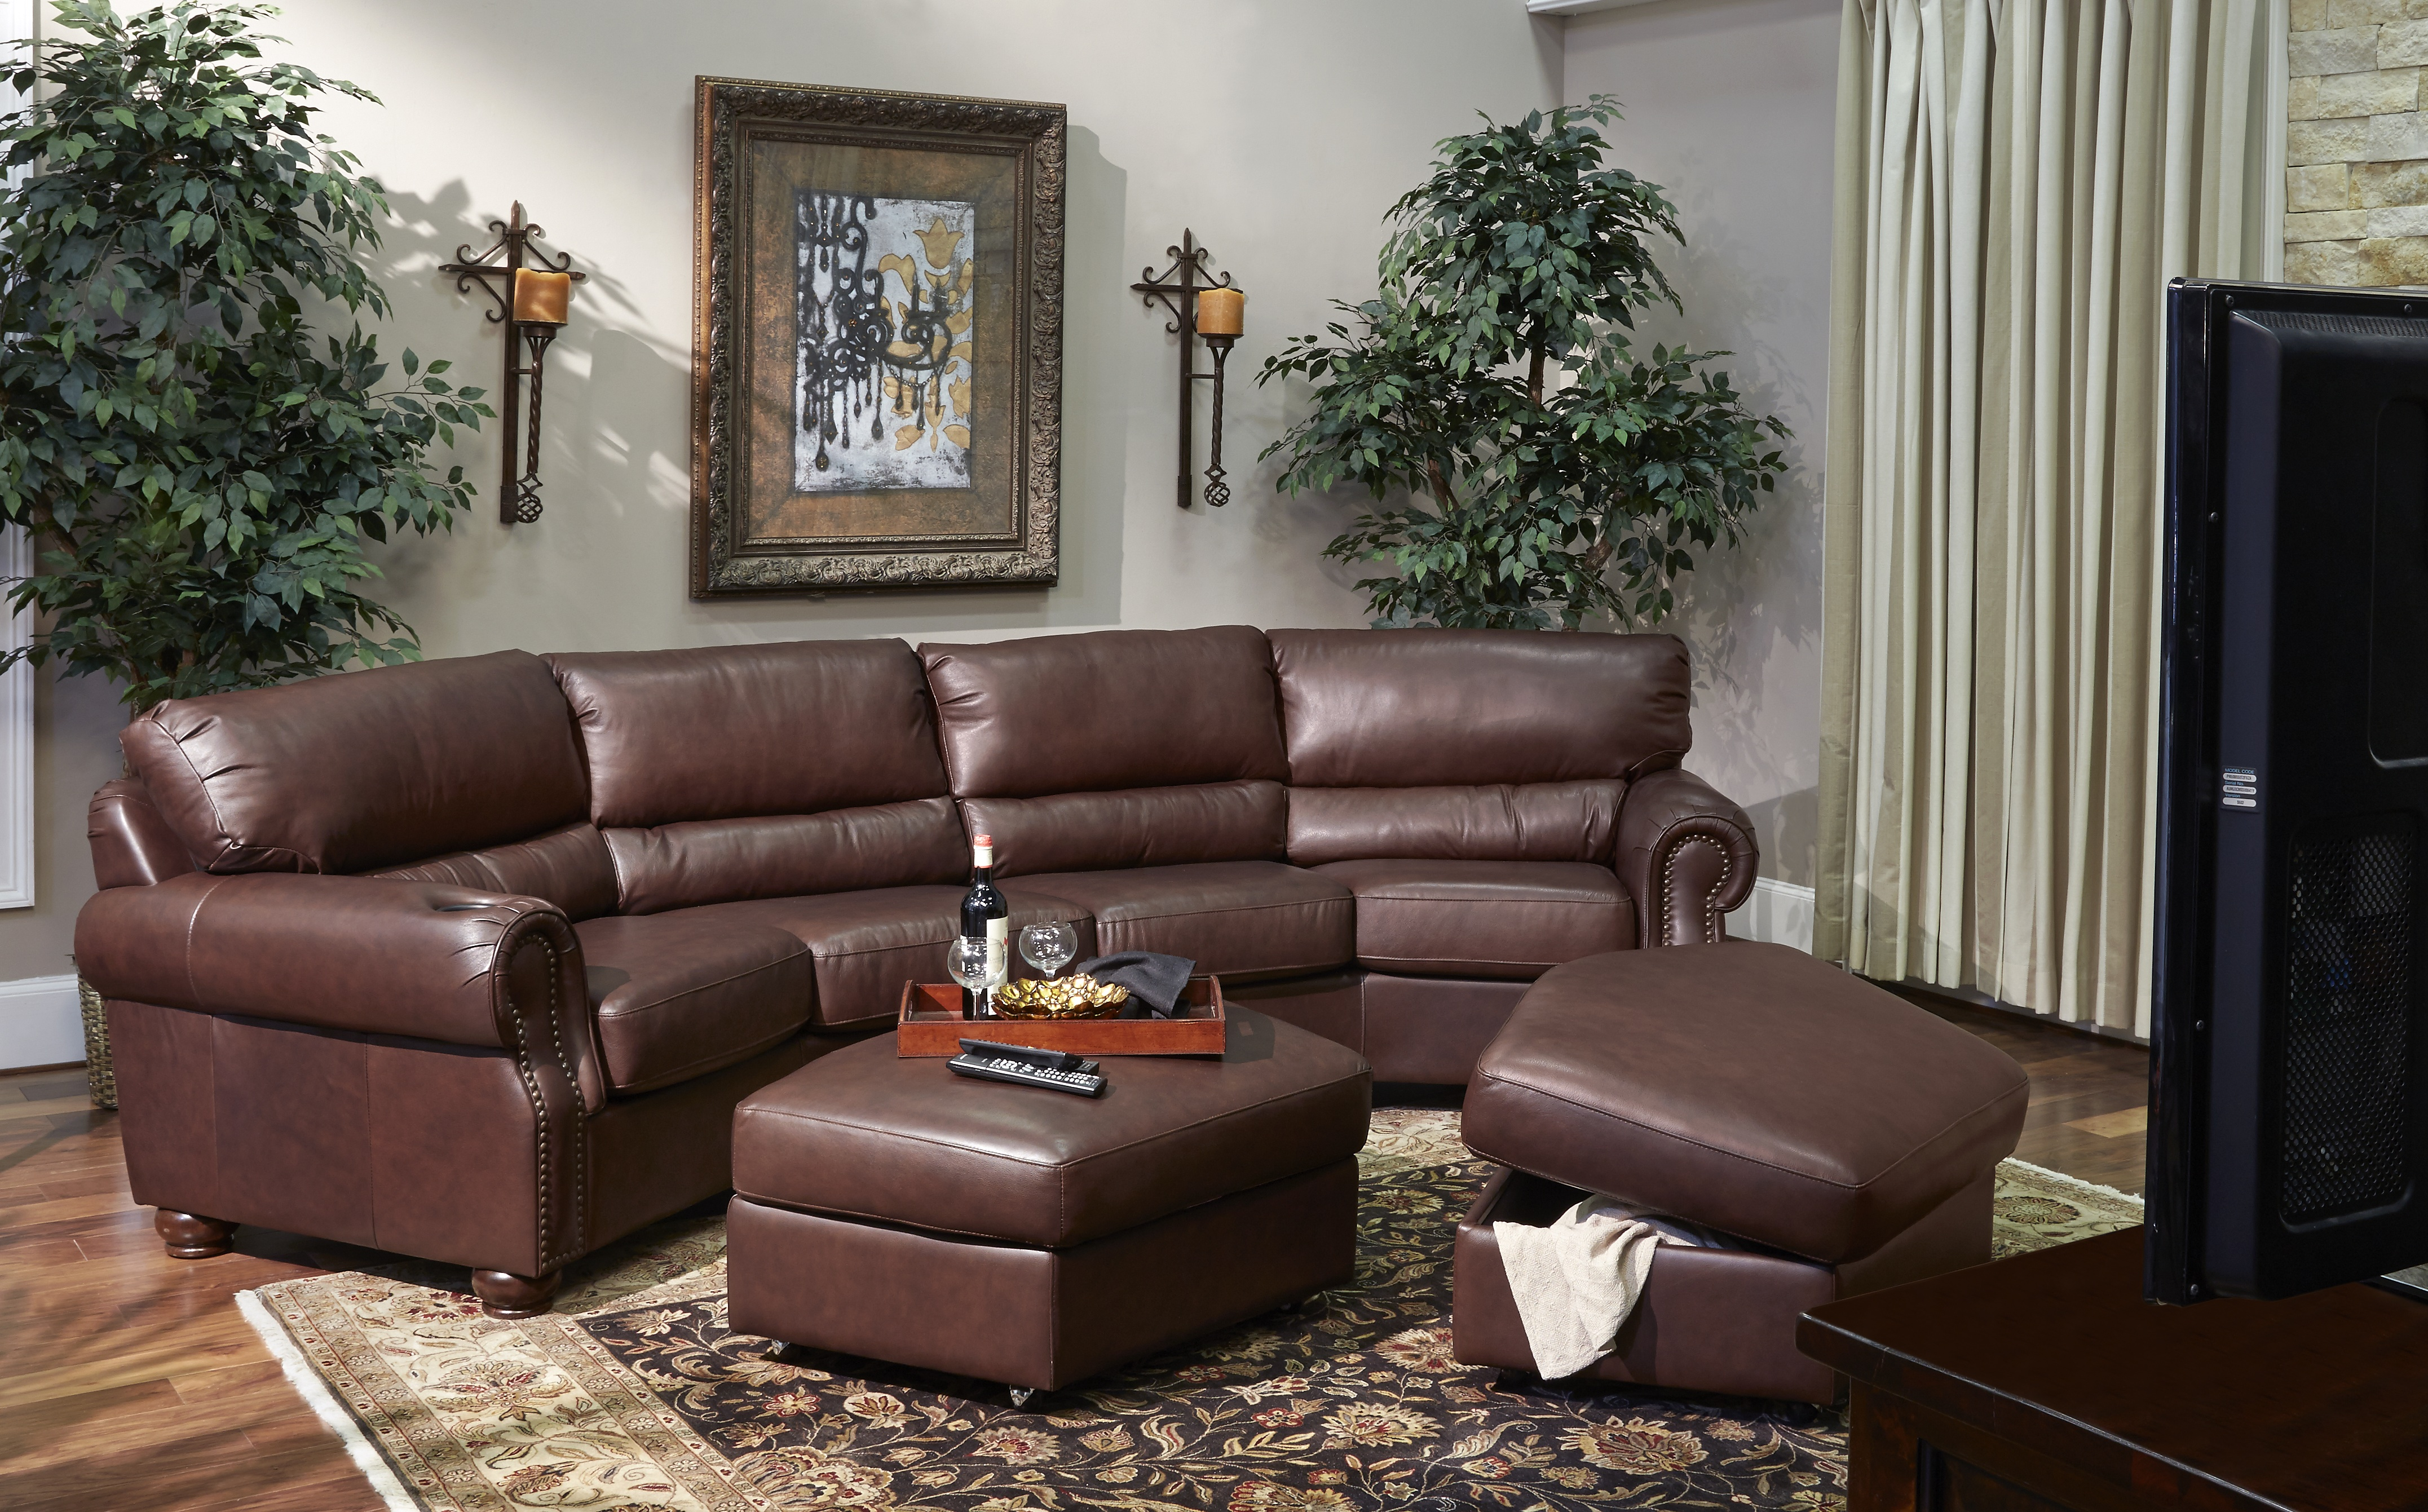 Caring for Your American Made Leather Furniture